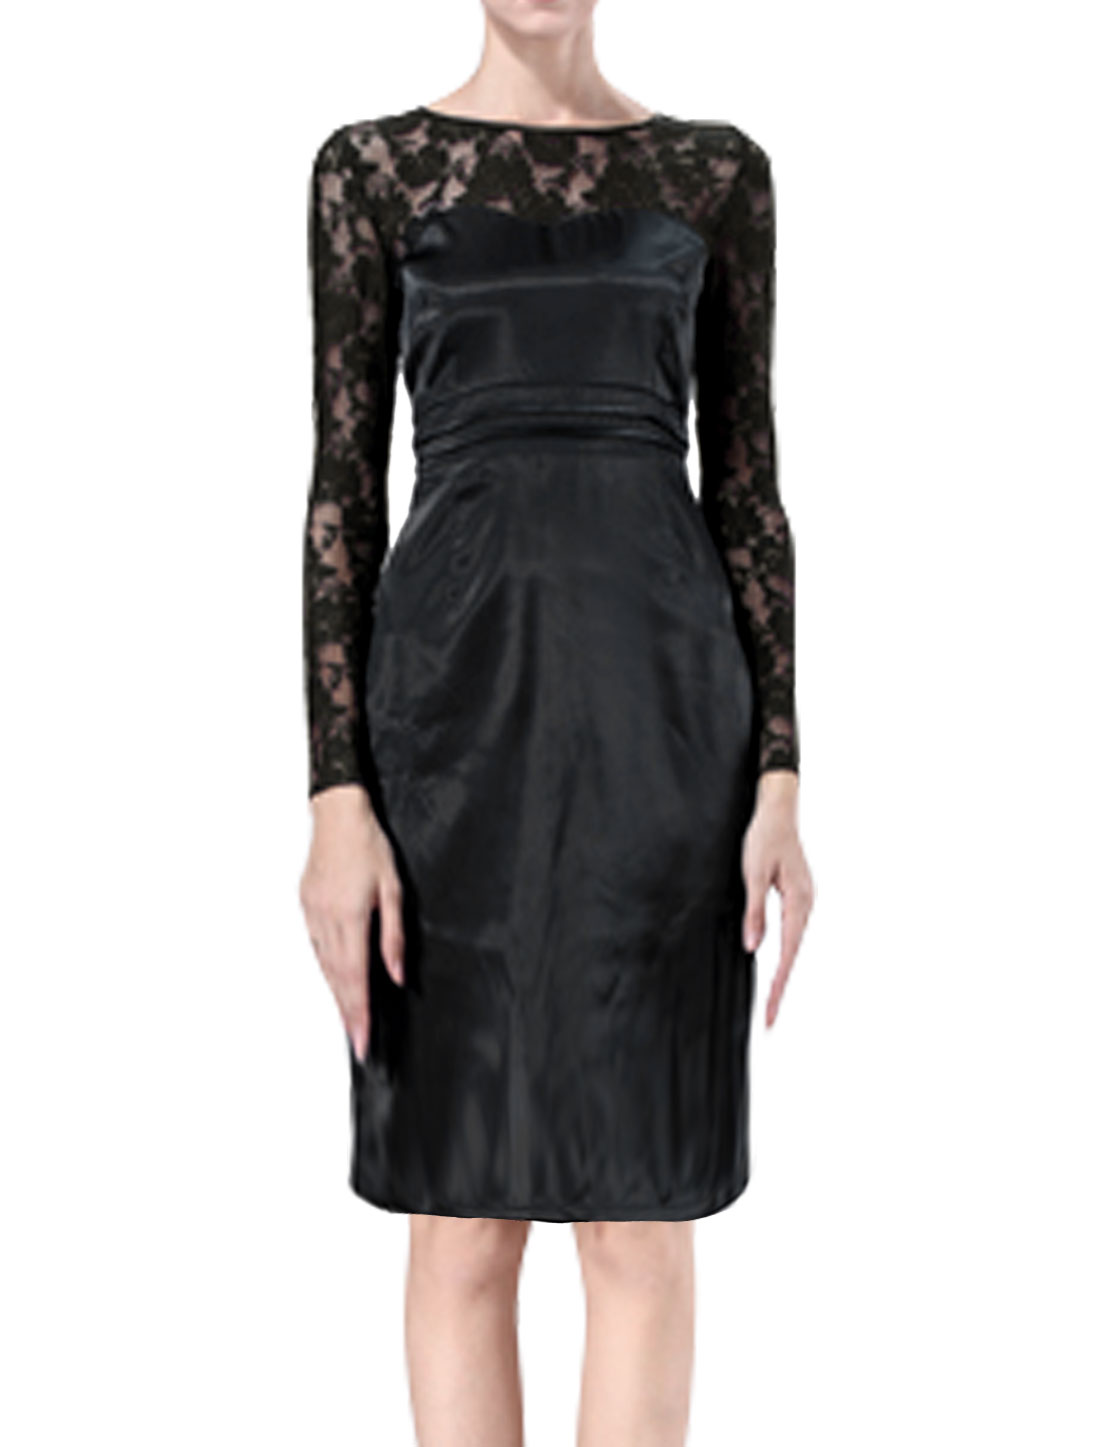 Women Long Sleeves Semi Sheer Lace Panel Sheath Dress Black S